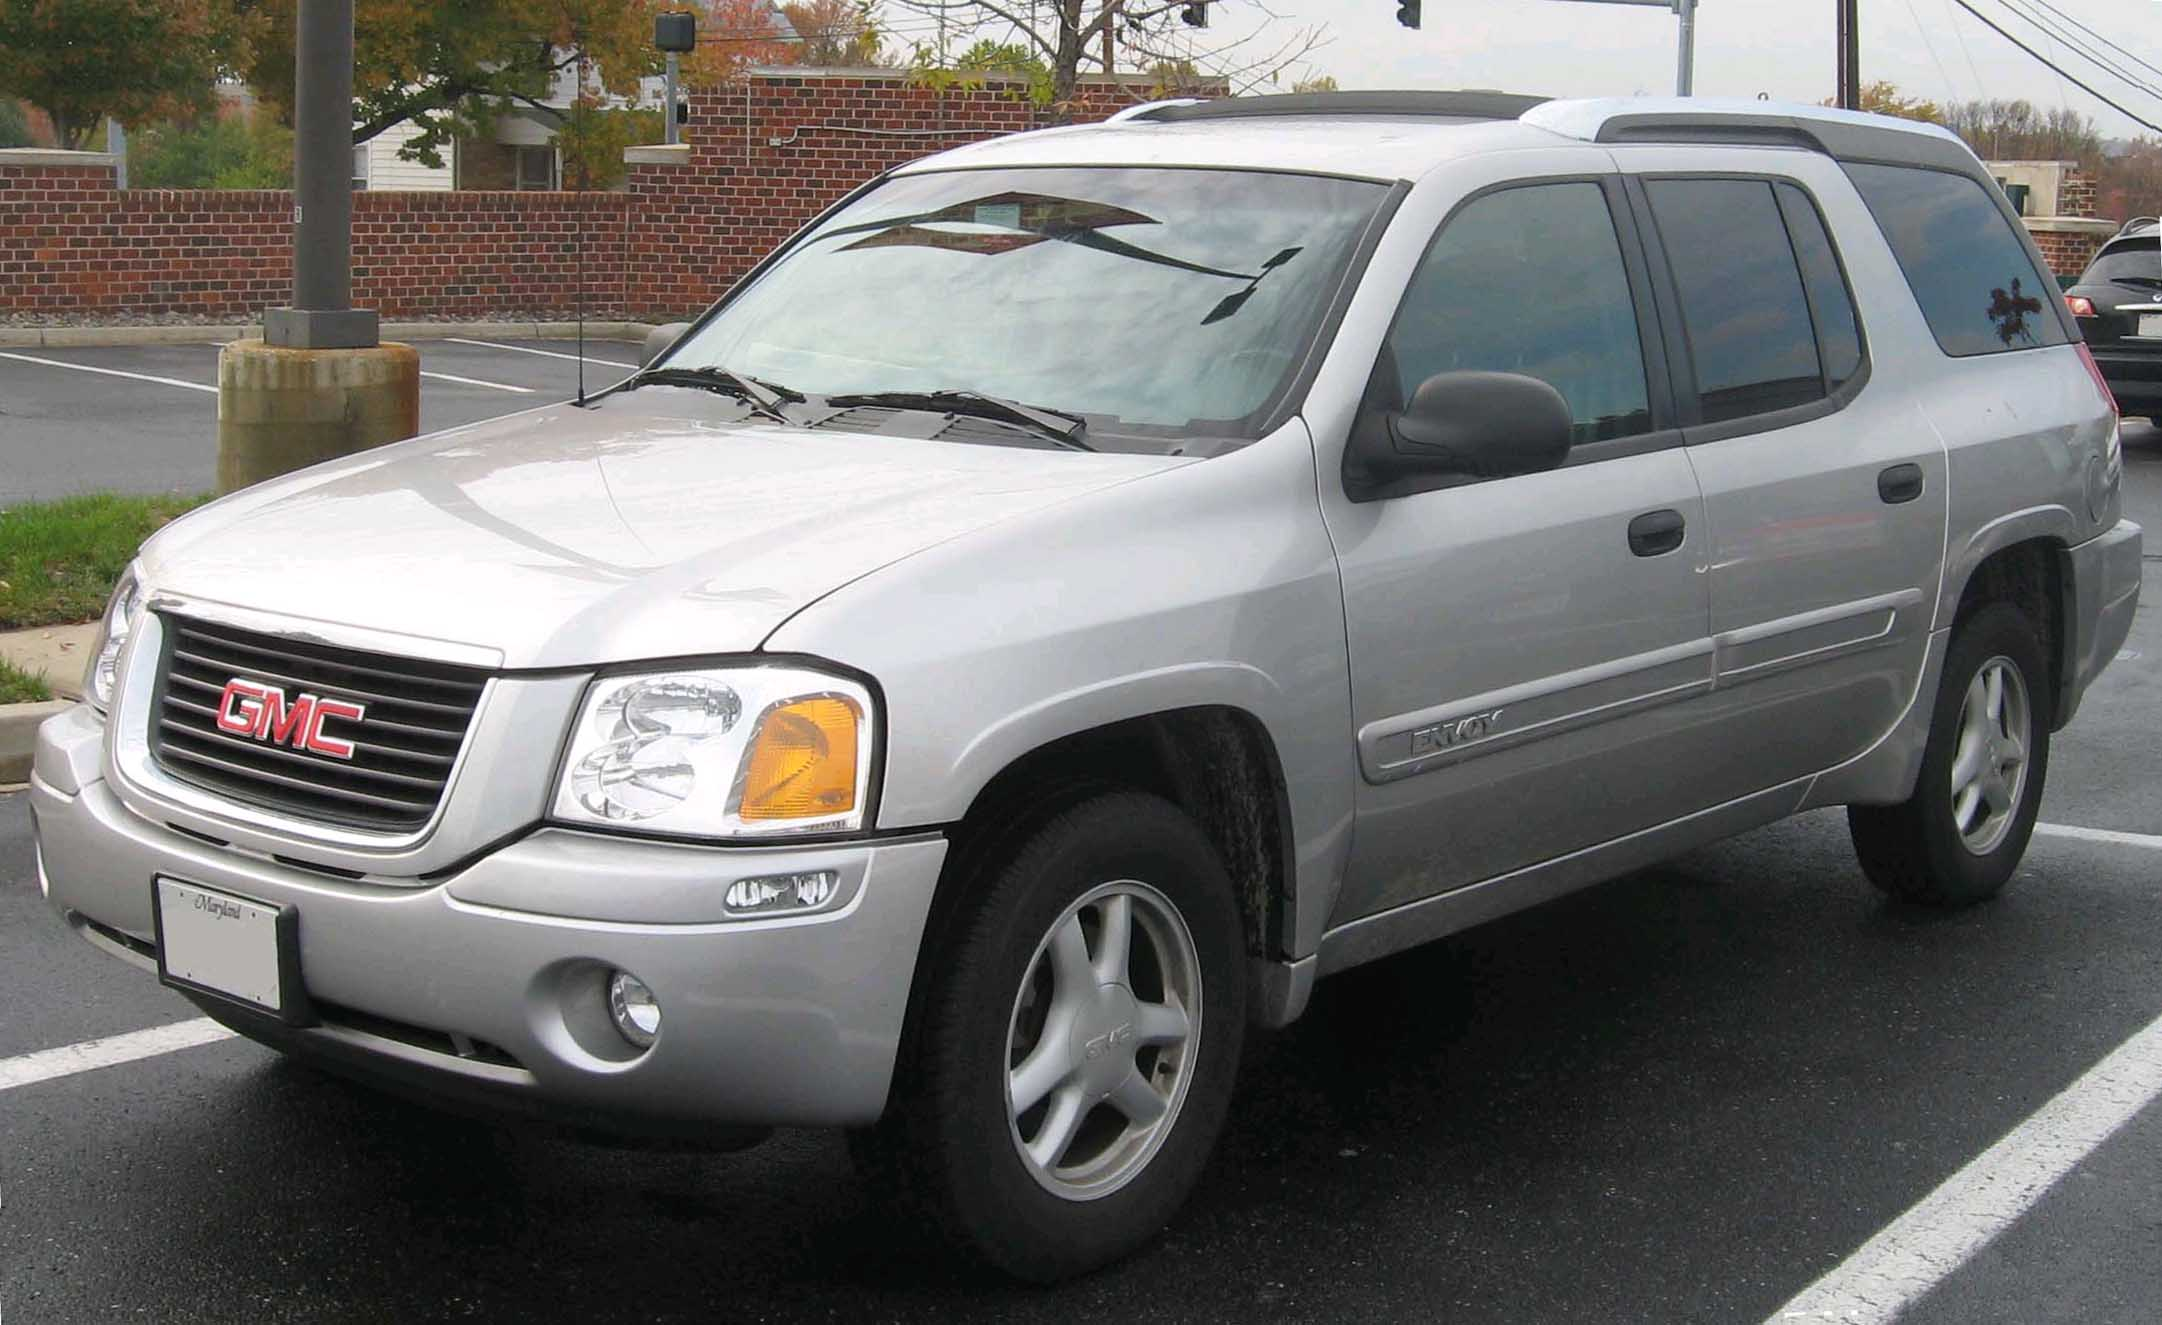 Gmc Envoy   pictures, information and specs - Auto-Database.com